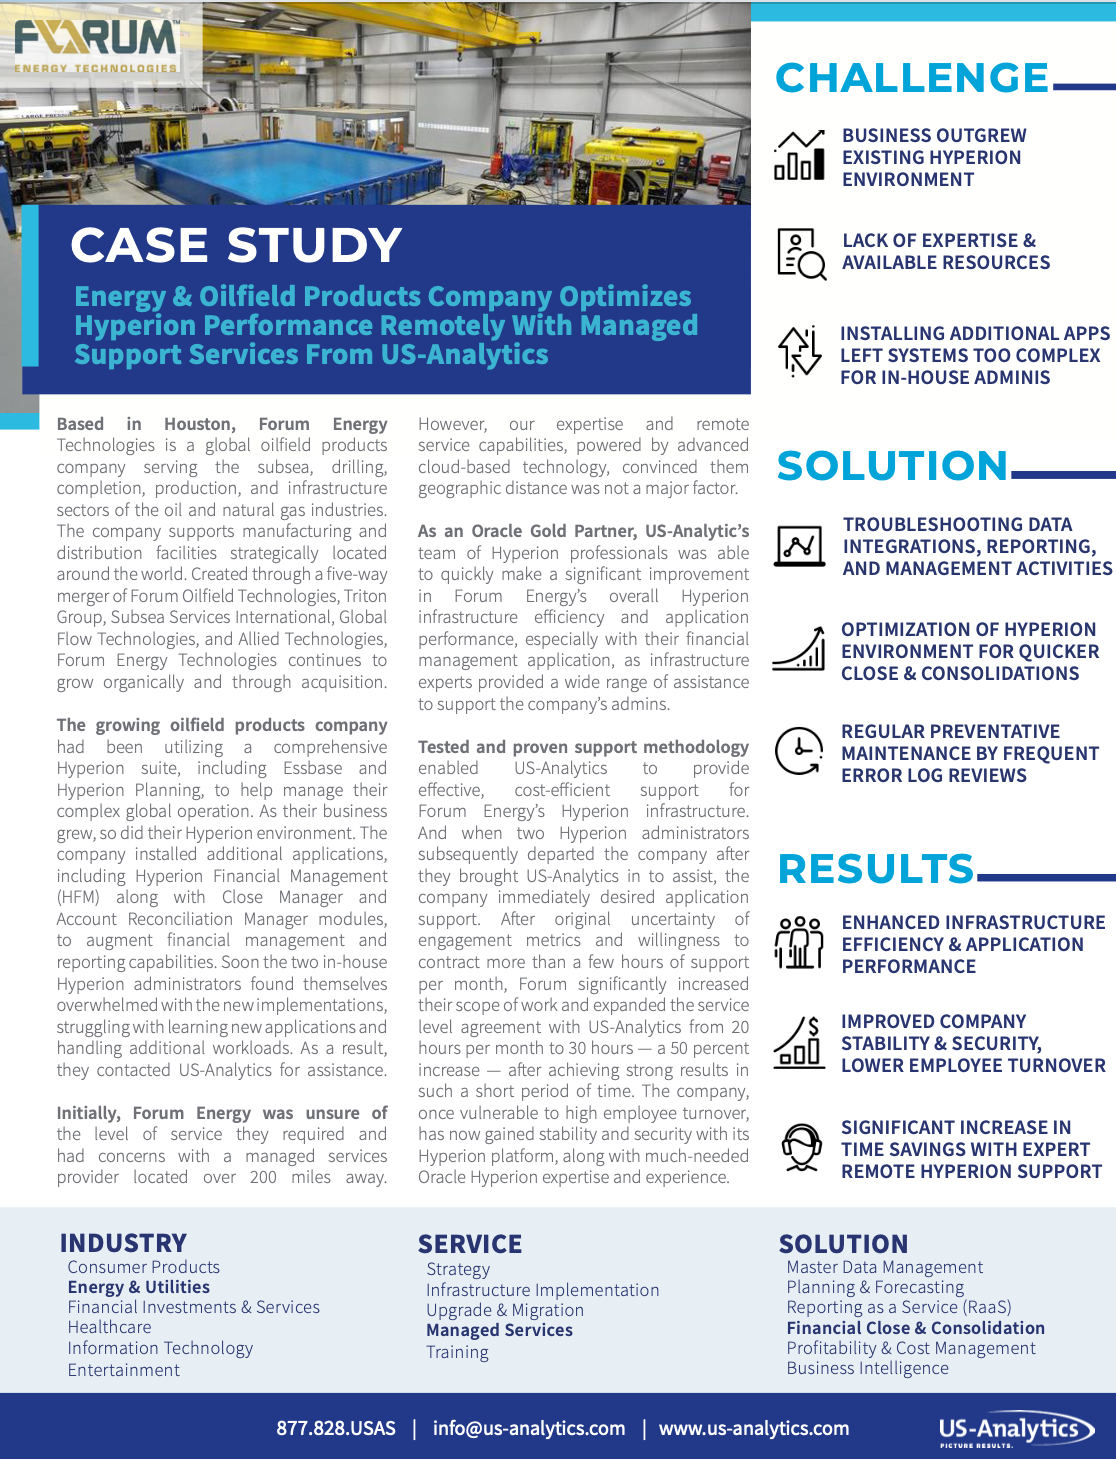 Forum Energy Case Study Thumbnail